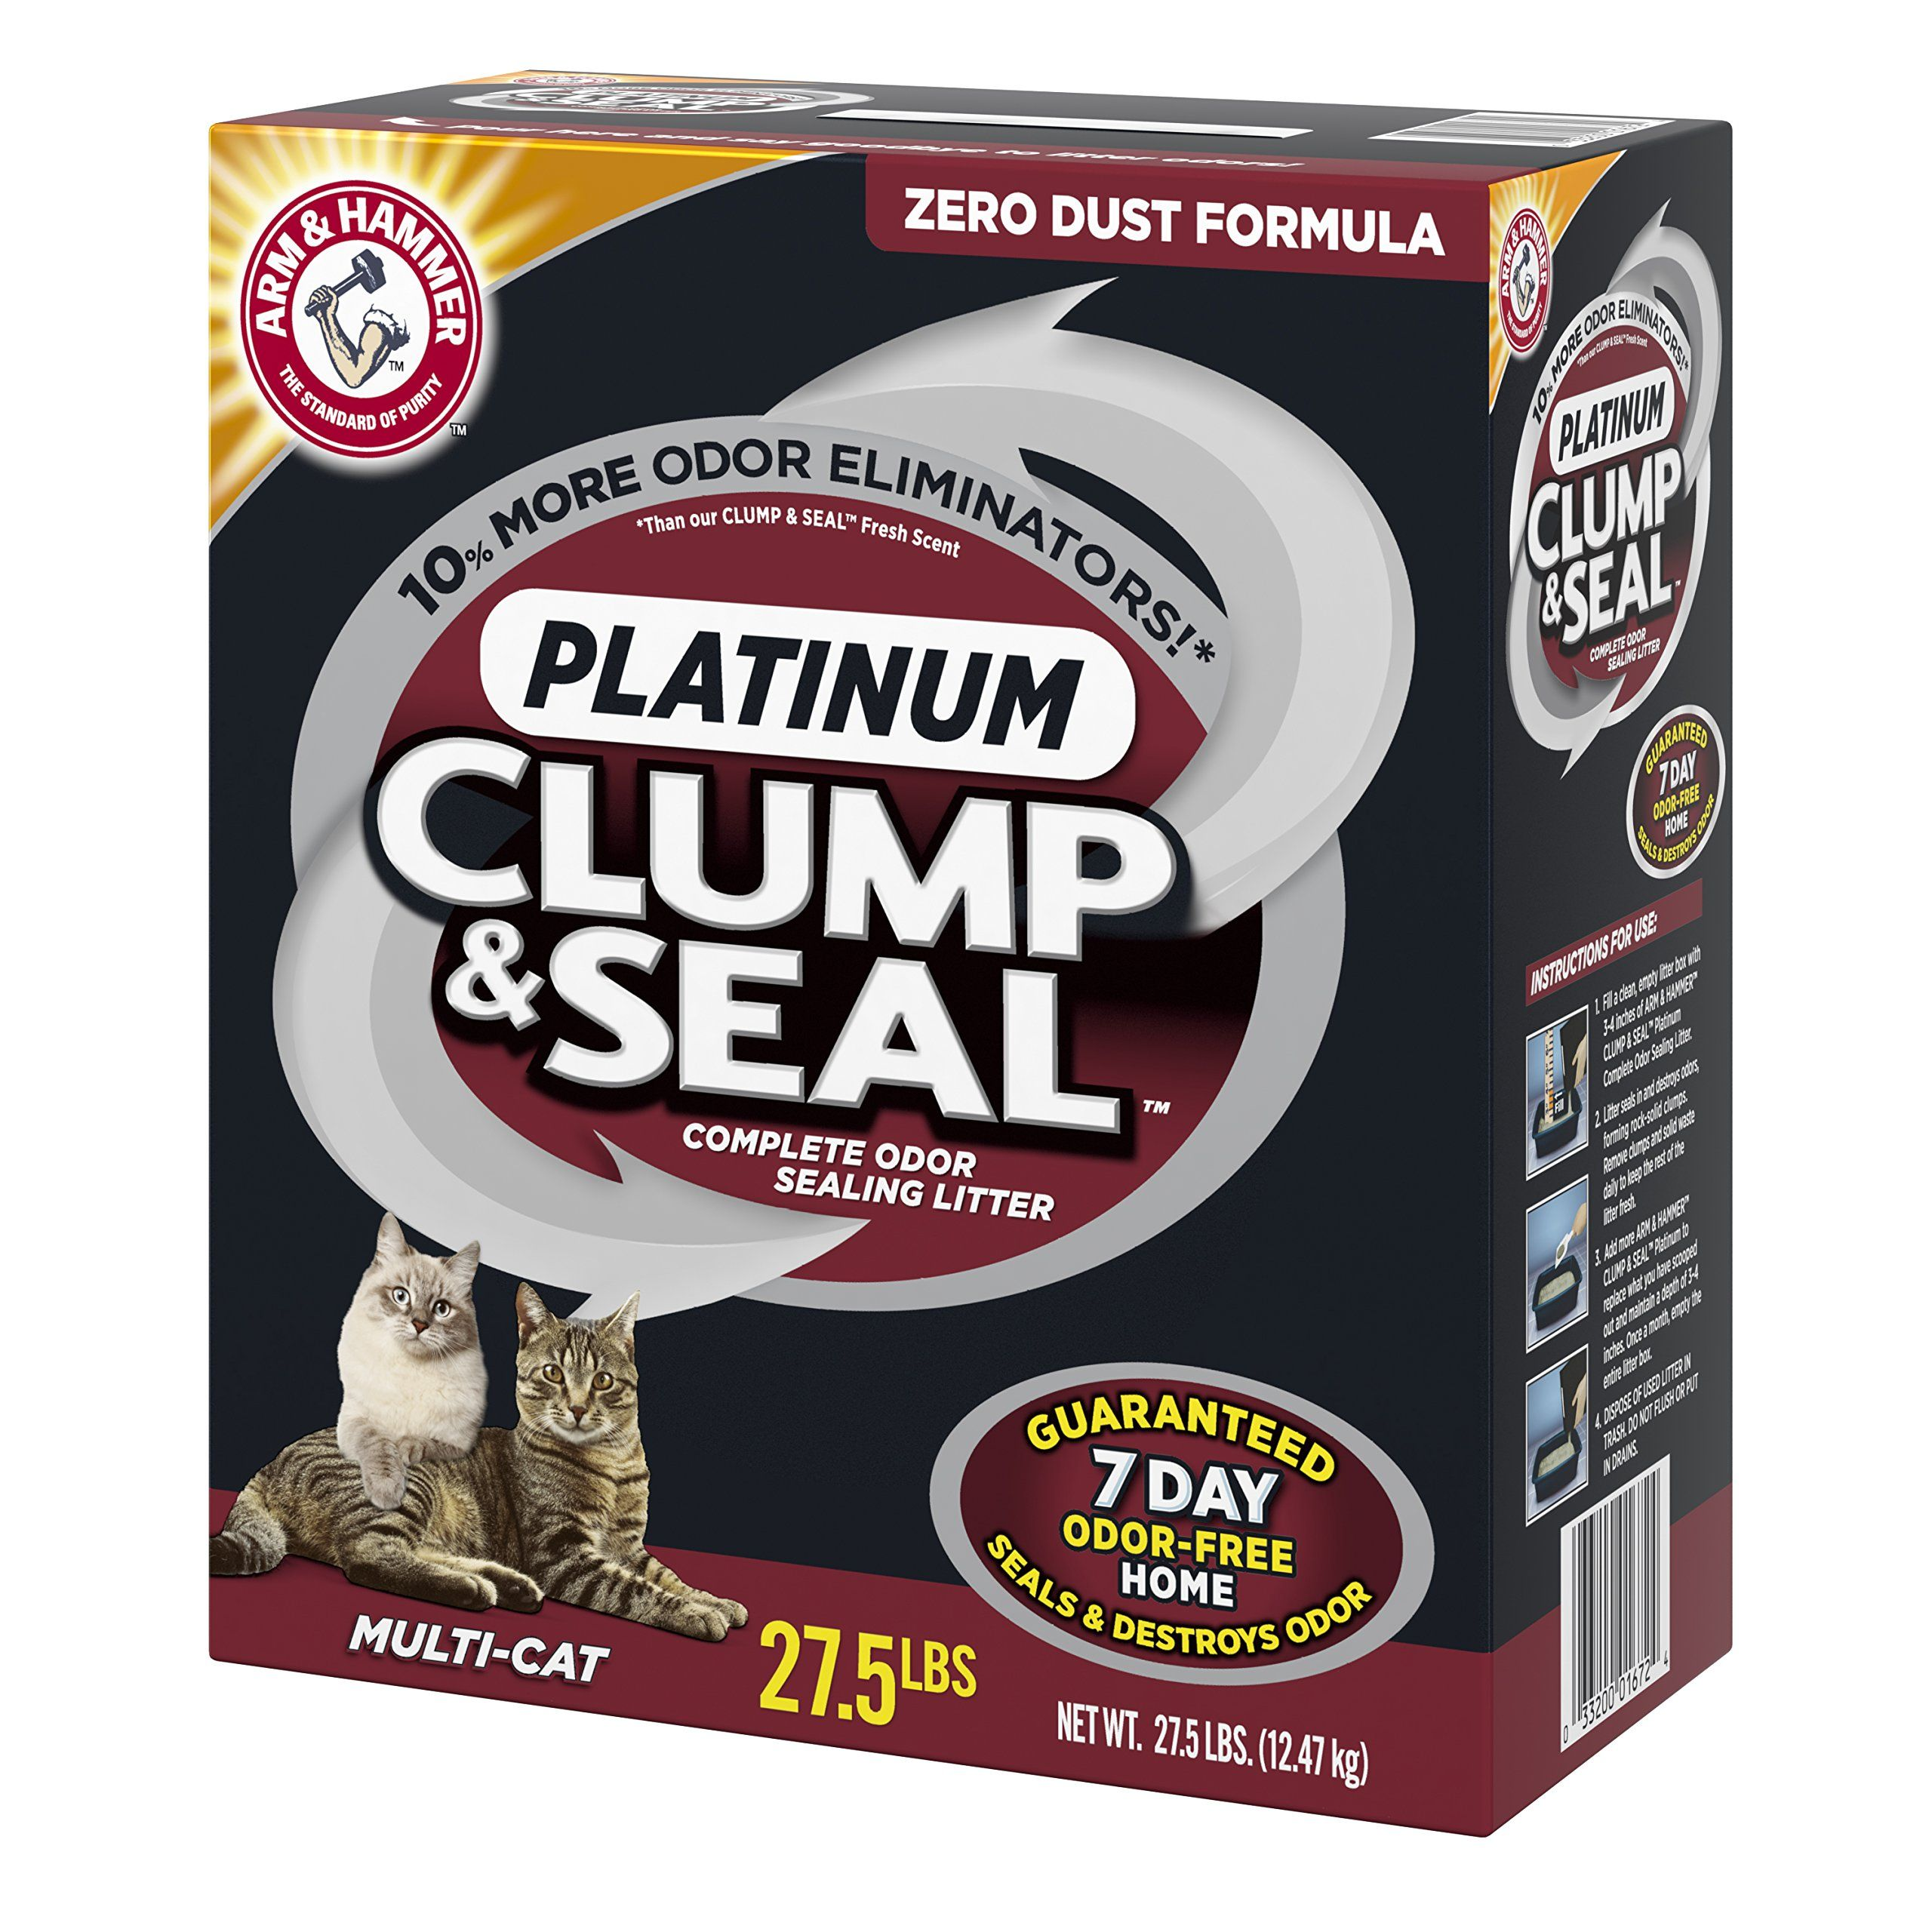 Pin by Mary Pets on Pet Supplies Cat litter, Clumping